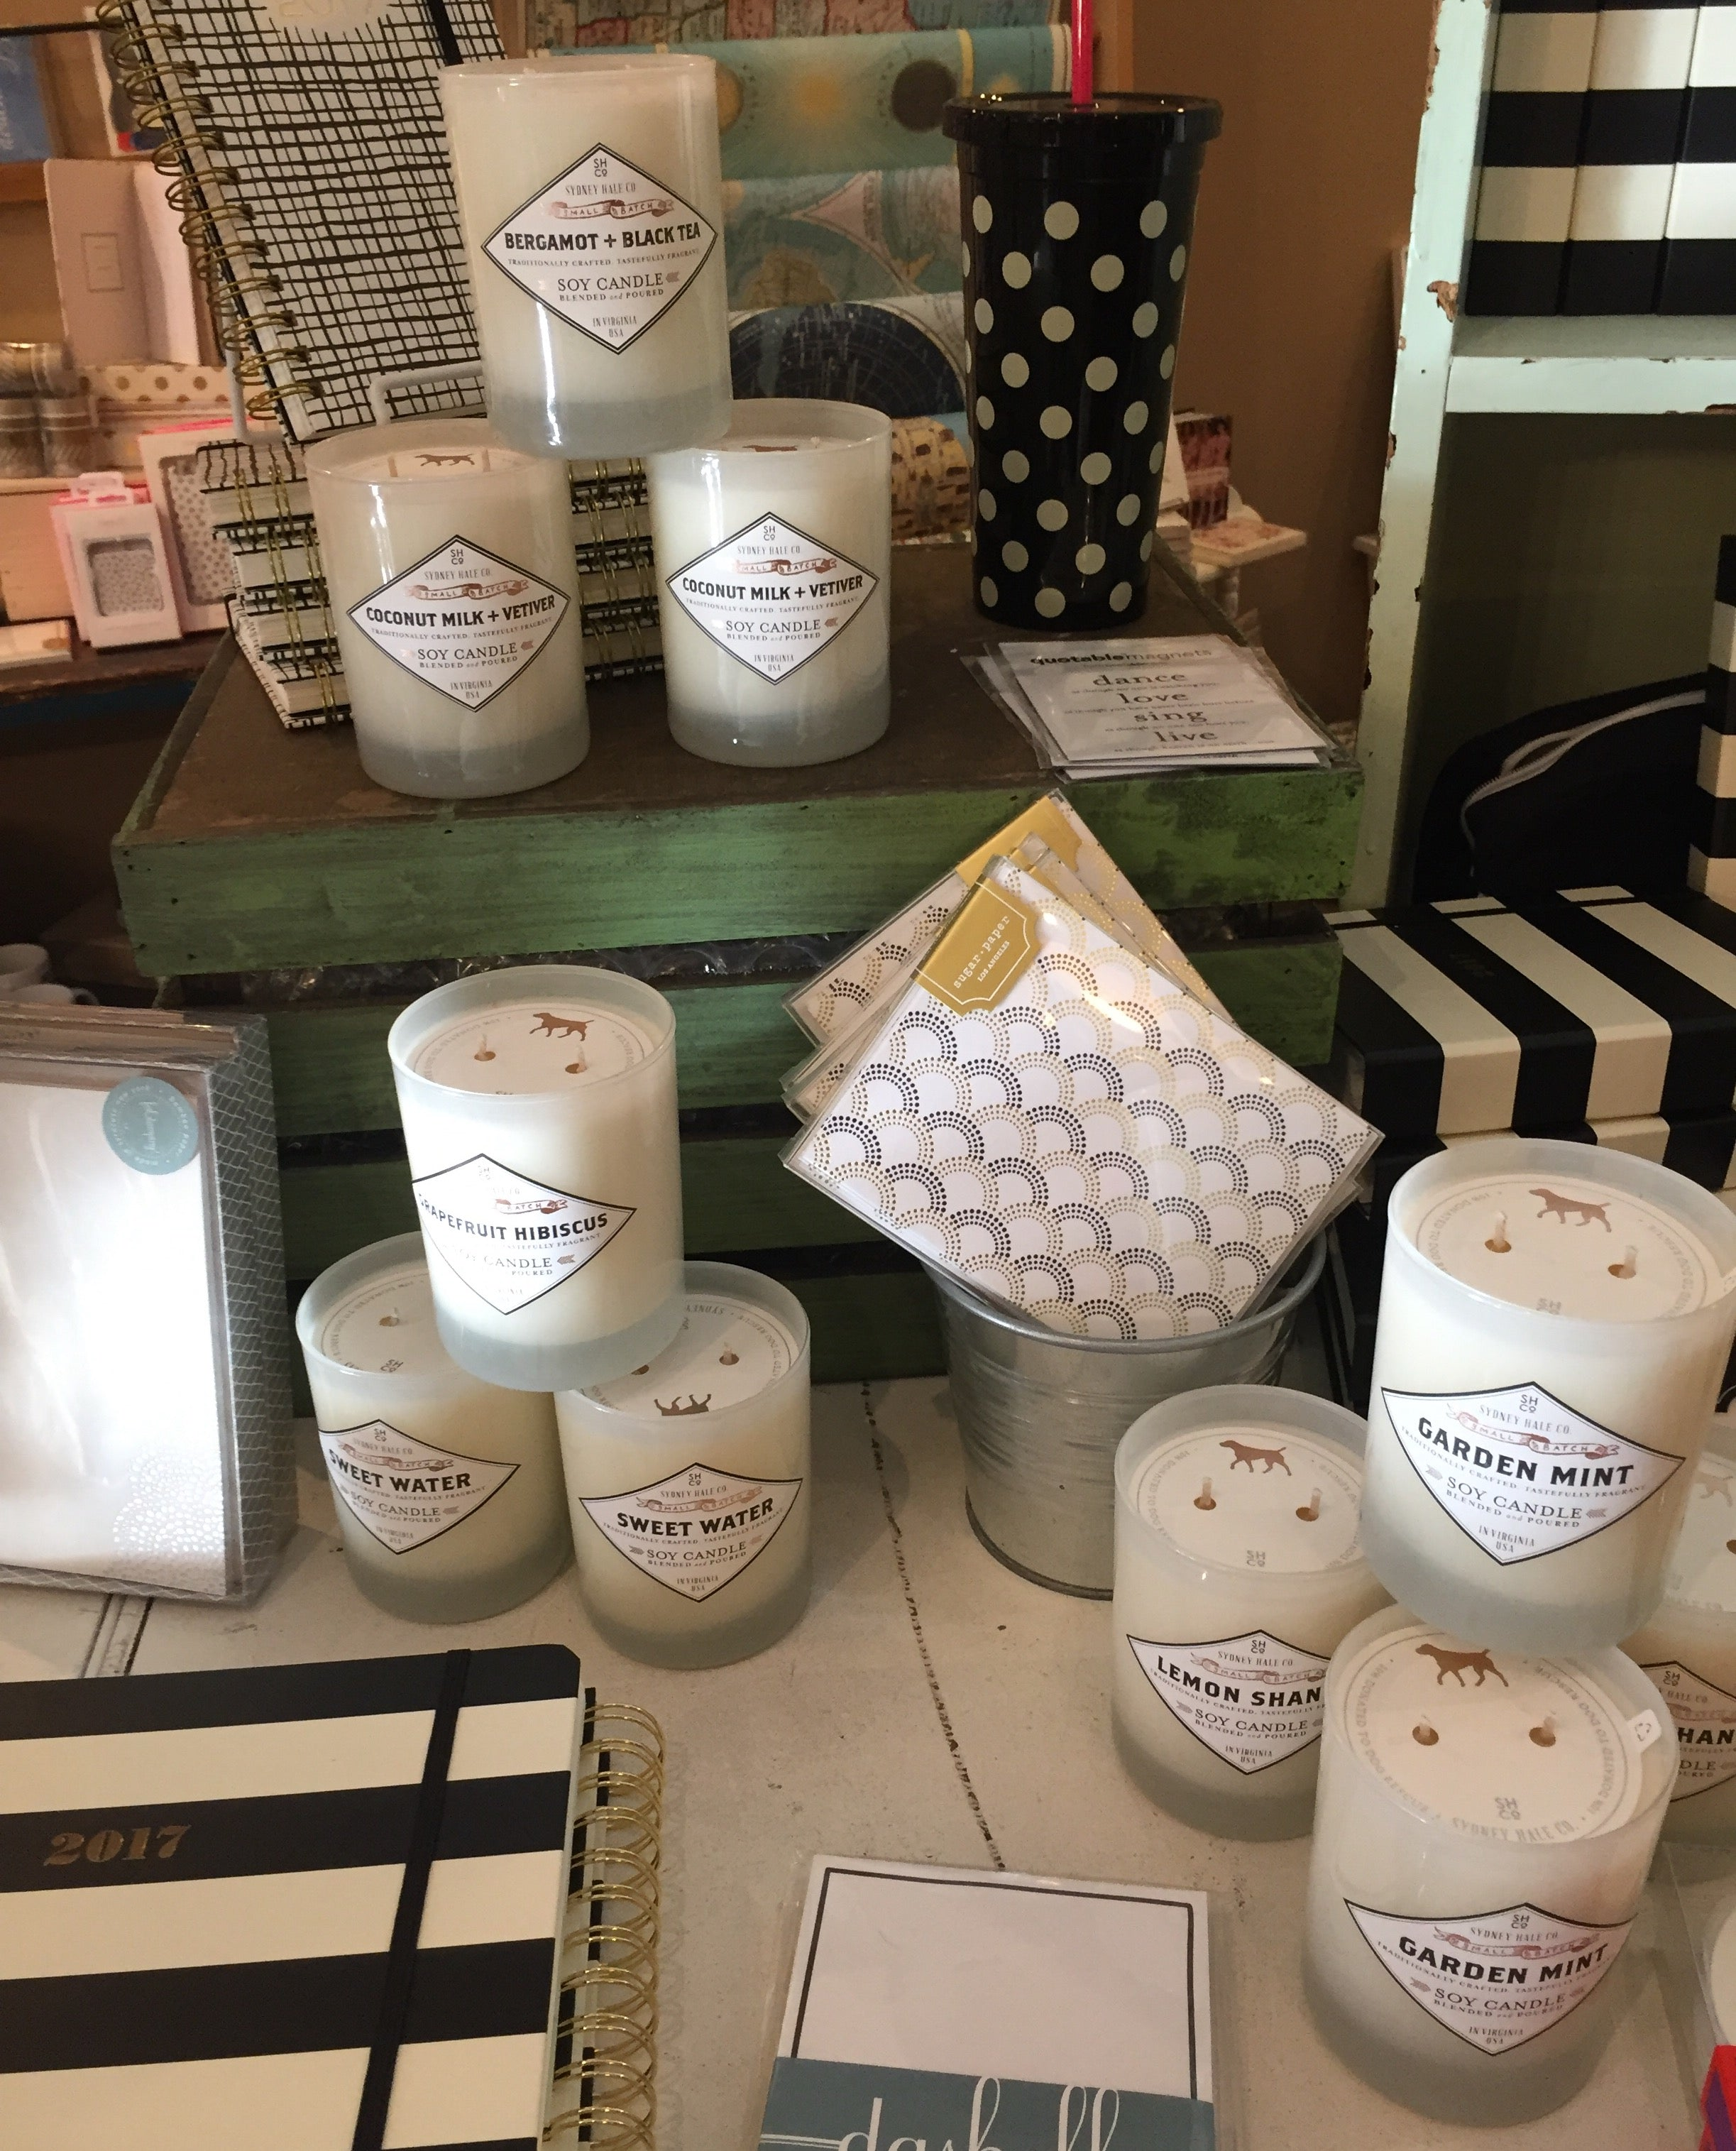 These Sydney Hale Co. candles are a staff favorite! They smell amazing and the company donates 10% of sales to dog rescue. Perfect for the dog lover in your life!